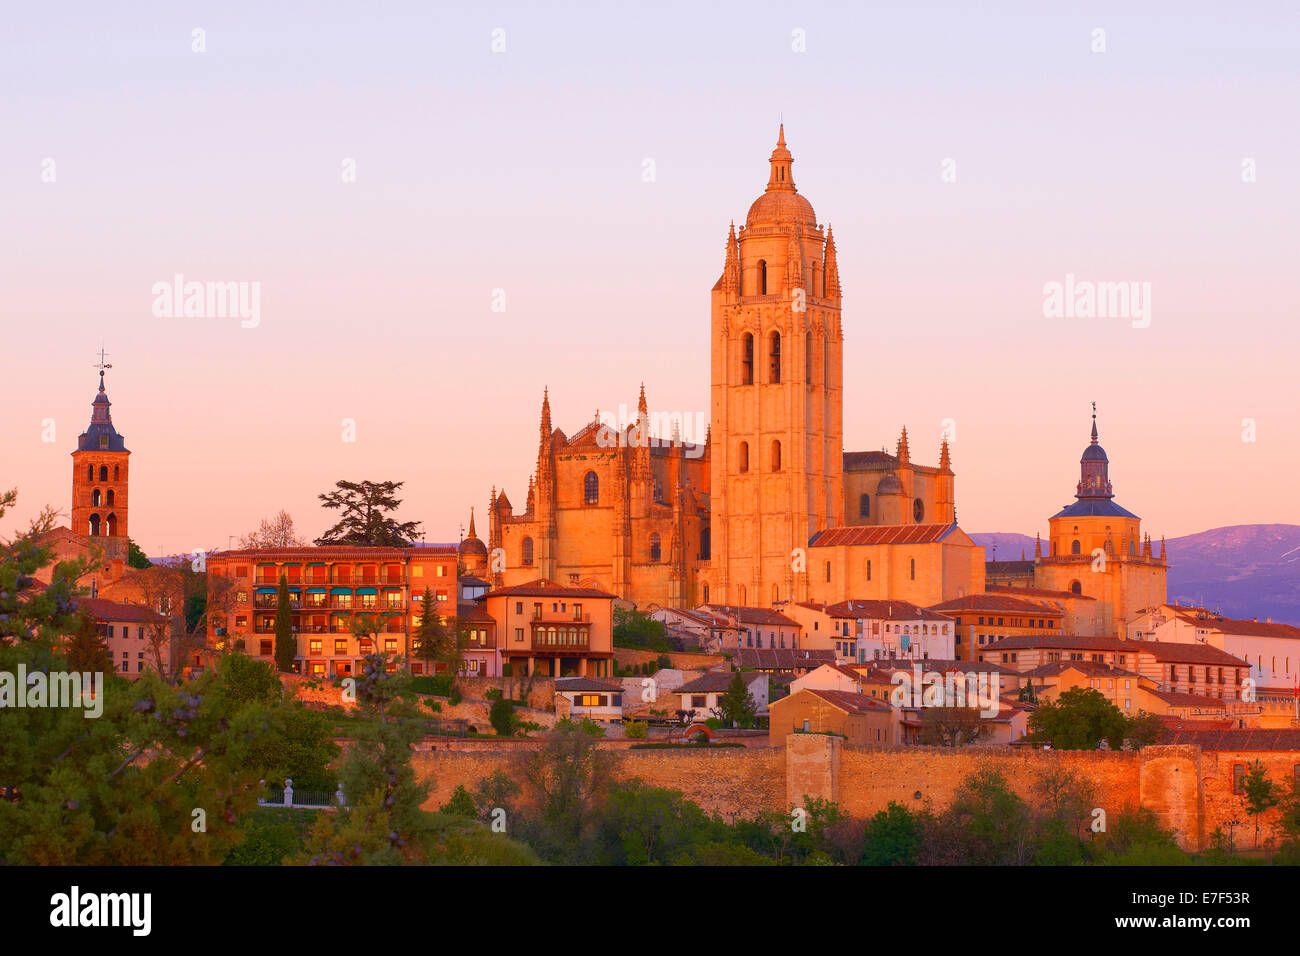 Segovia Cathedral, at sunset, Segovia, Castile and León, Spain - Stock Image